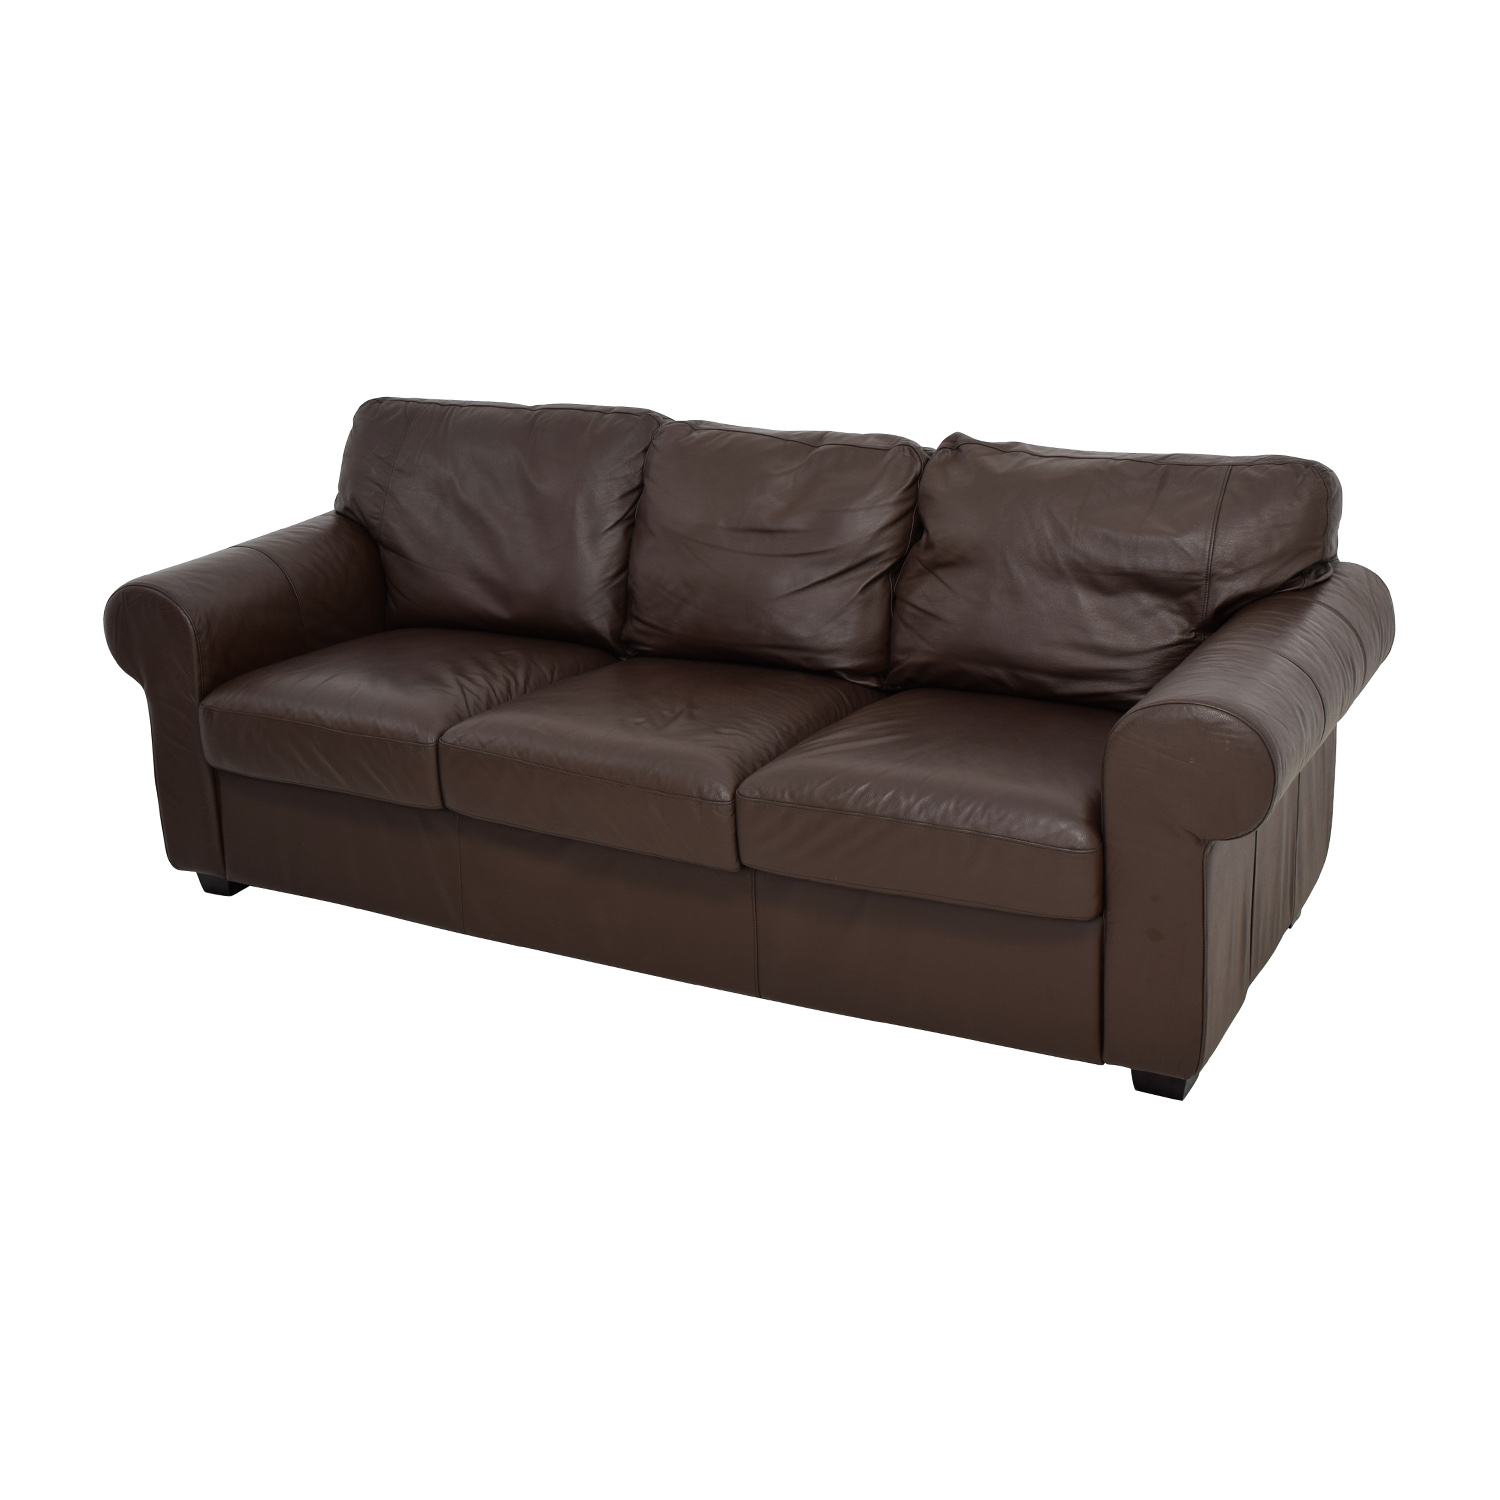 Phenomenal 62 Off Ikea Ikea Dark Brown Three Cushion Leather Couch Sofas Gmtry Best Dining Table And Chair Ideas Images Gmtryco